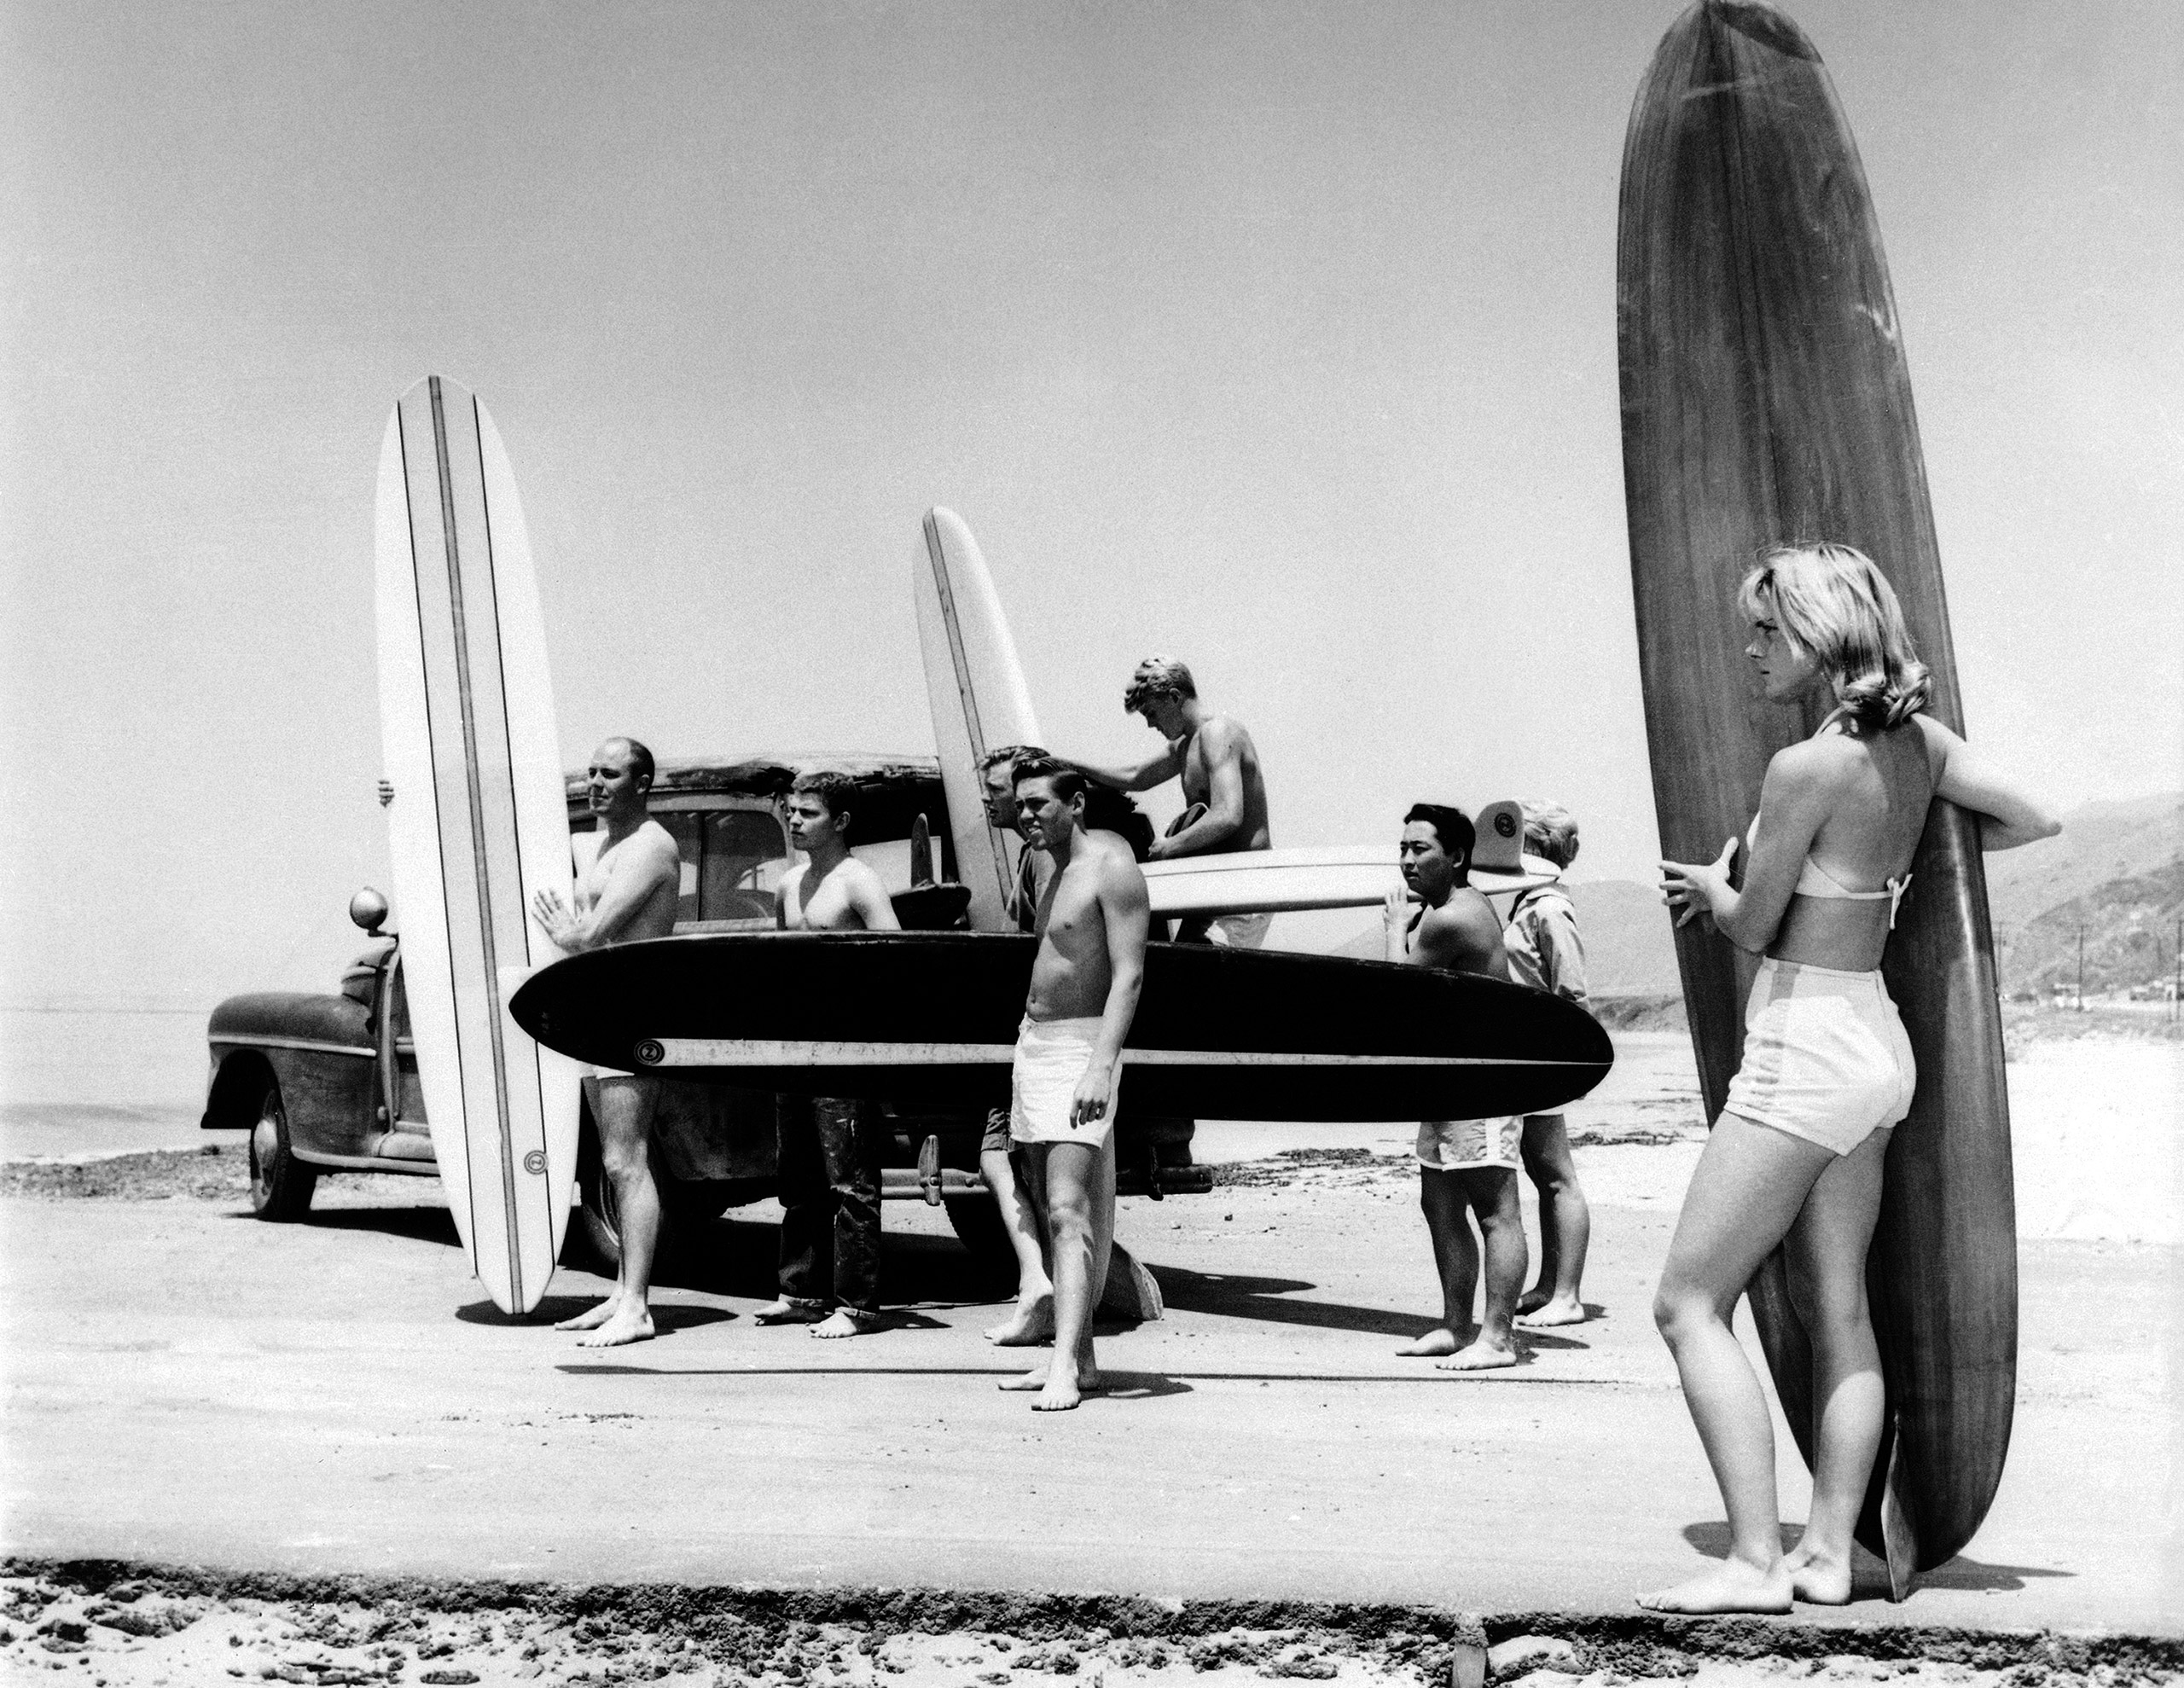 Members of the North Bay surfing club upload their surf boards from a station wagon at Malibu Beach, Calif. on July 12, 1961.